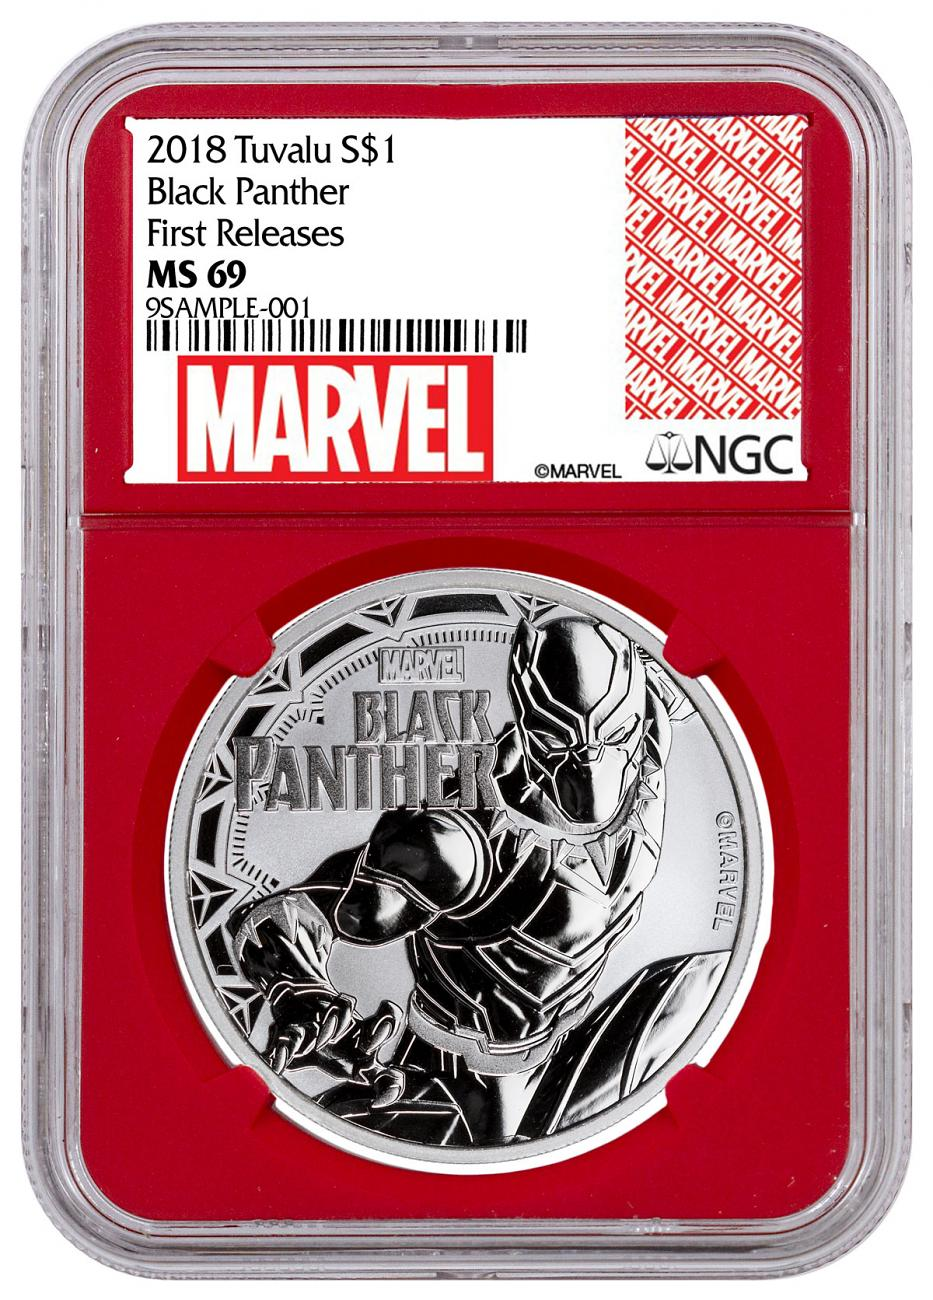 2018 Tuvalu Black Panther 1 oz Silver Marvel Series $1 Coin NGC MS69 FR Red Core Holder Exclusive Marvel Label